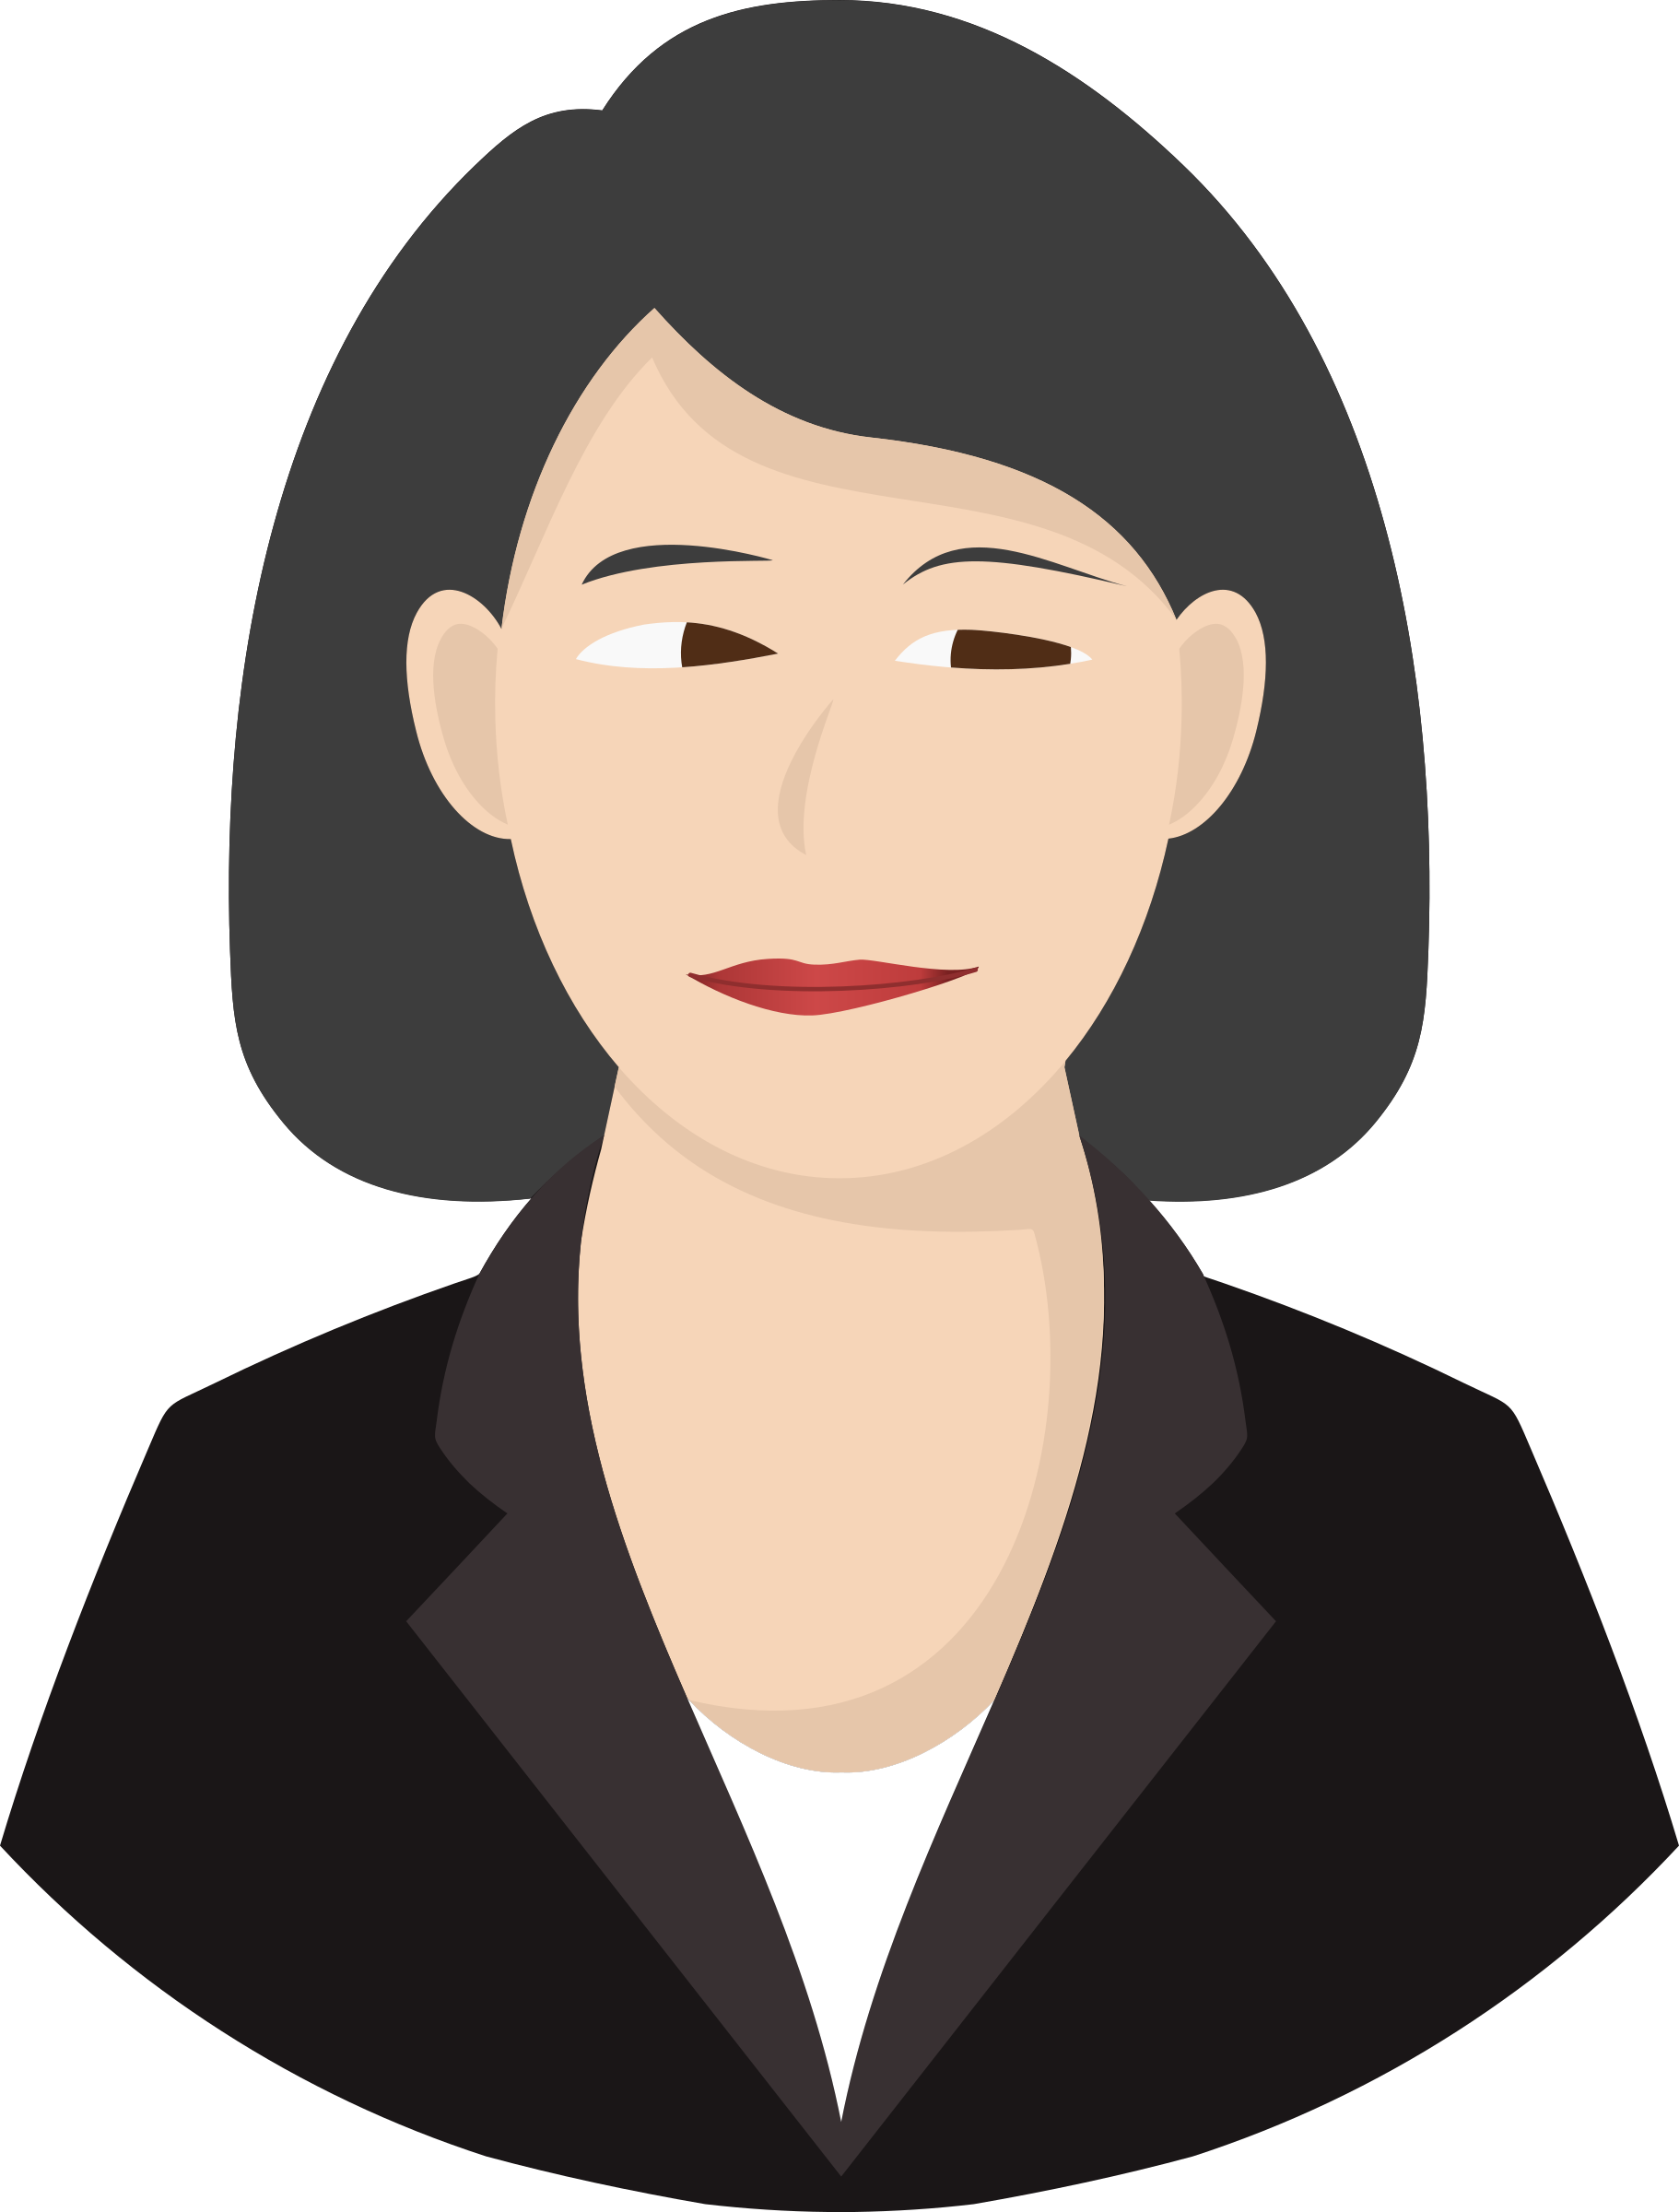 Woman big image png. Neck clipart detailed face